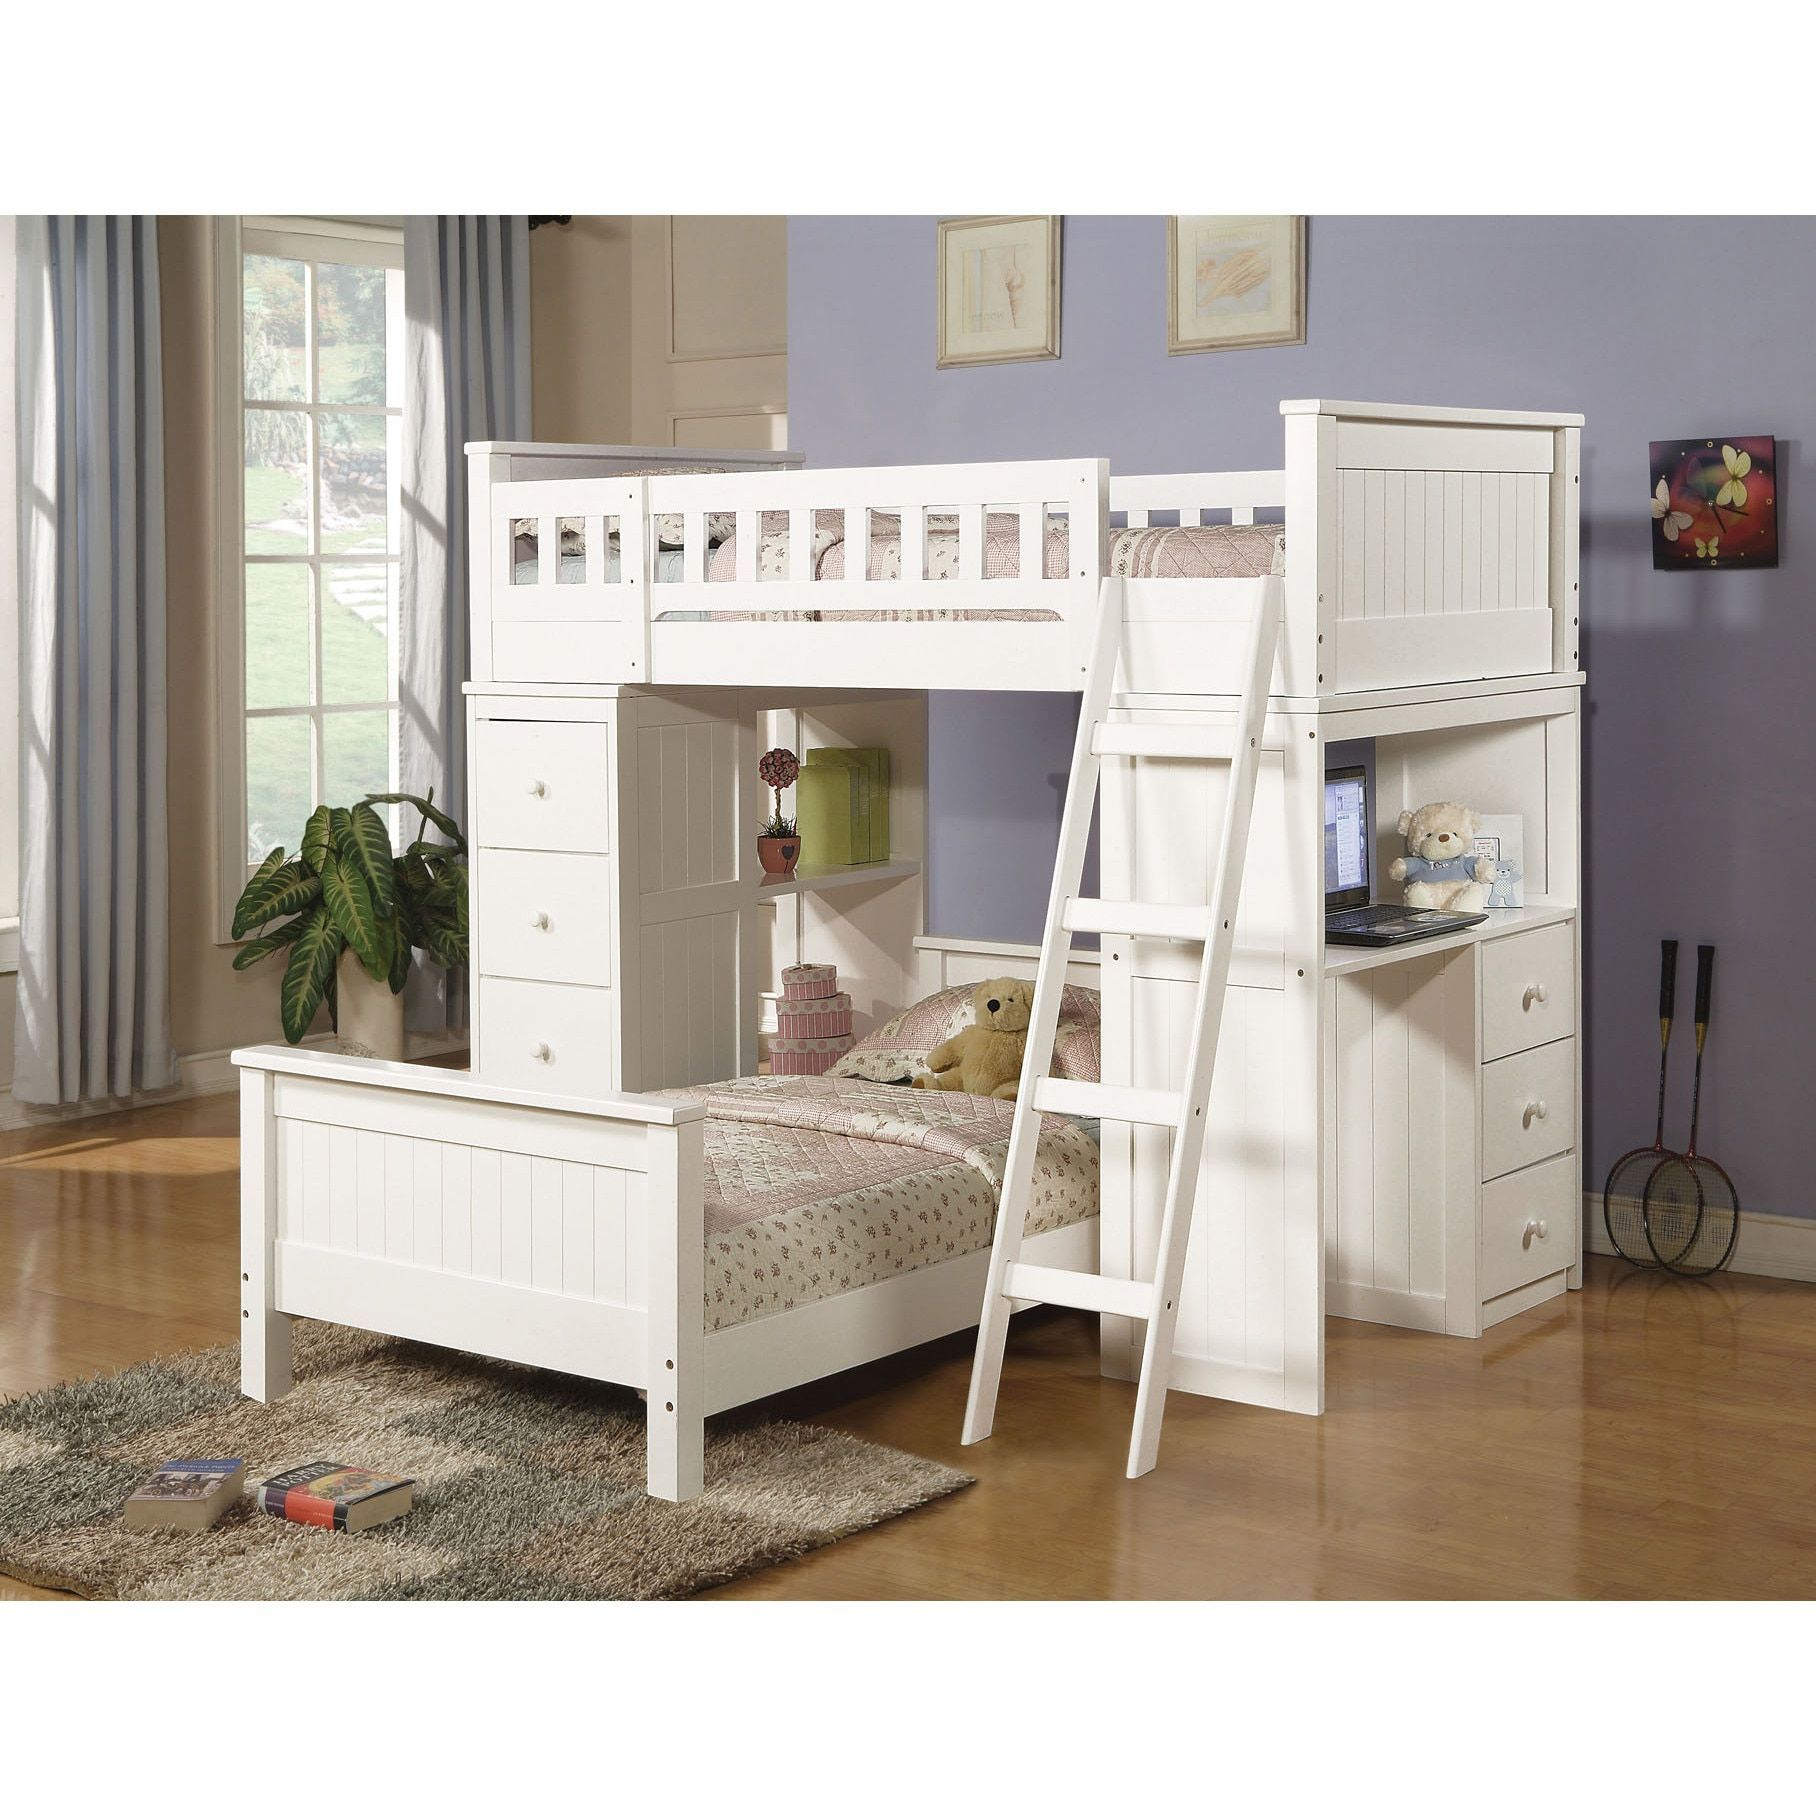 Acme Willoughby White Twin Loft Bed (white finish, 76x42